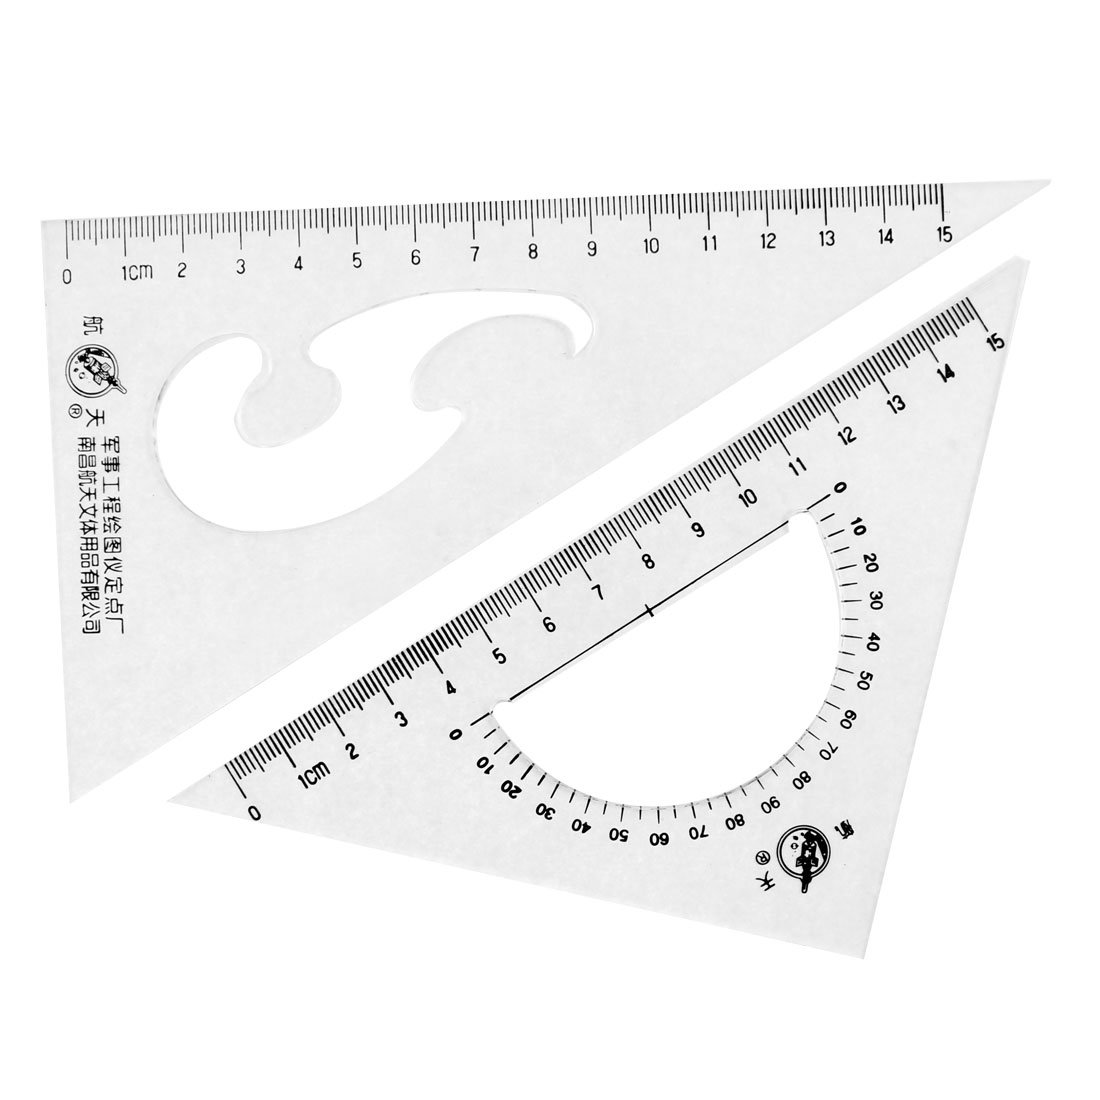 uxcell Office School Drafting Drawing Right Angle Triangle Ruler Combo Protractor 2 Pcs a15091100ux0072